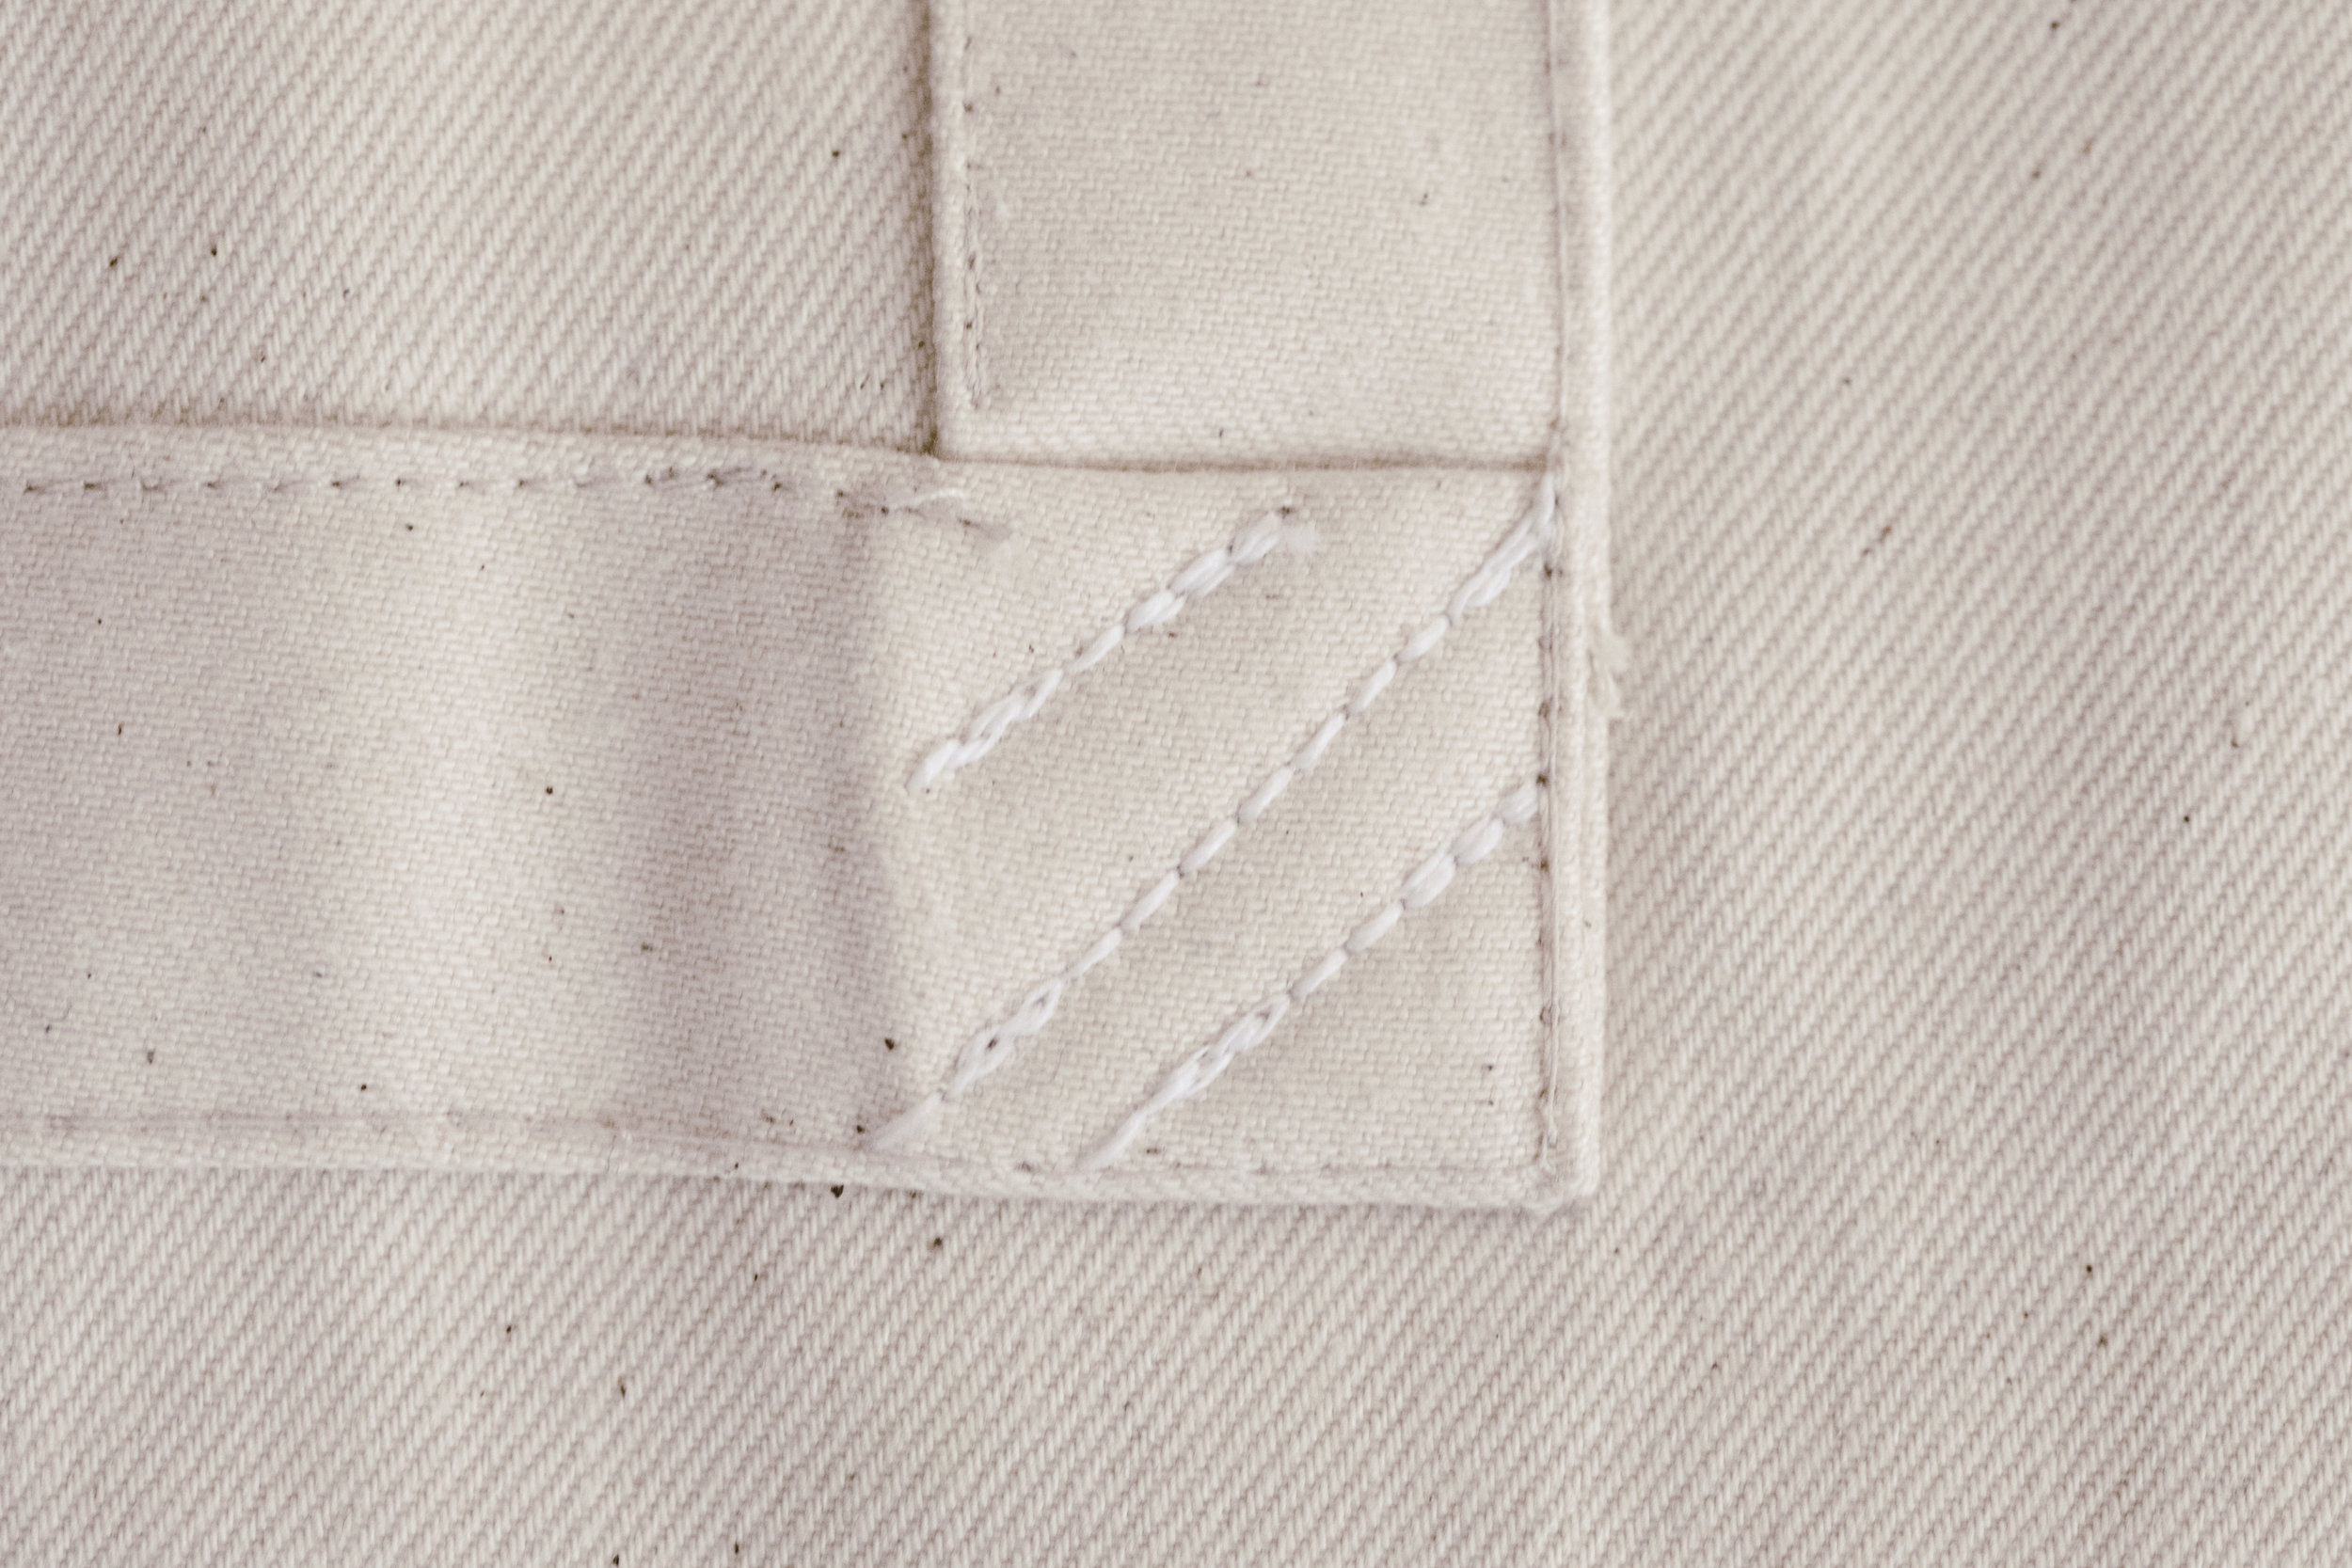 Studio apron stitch details / heirloomed